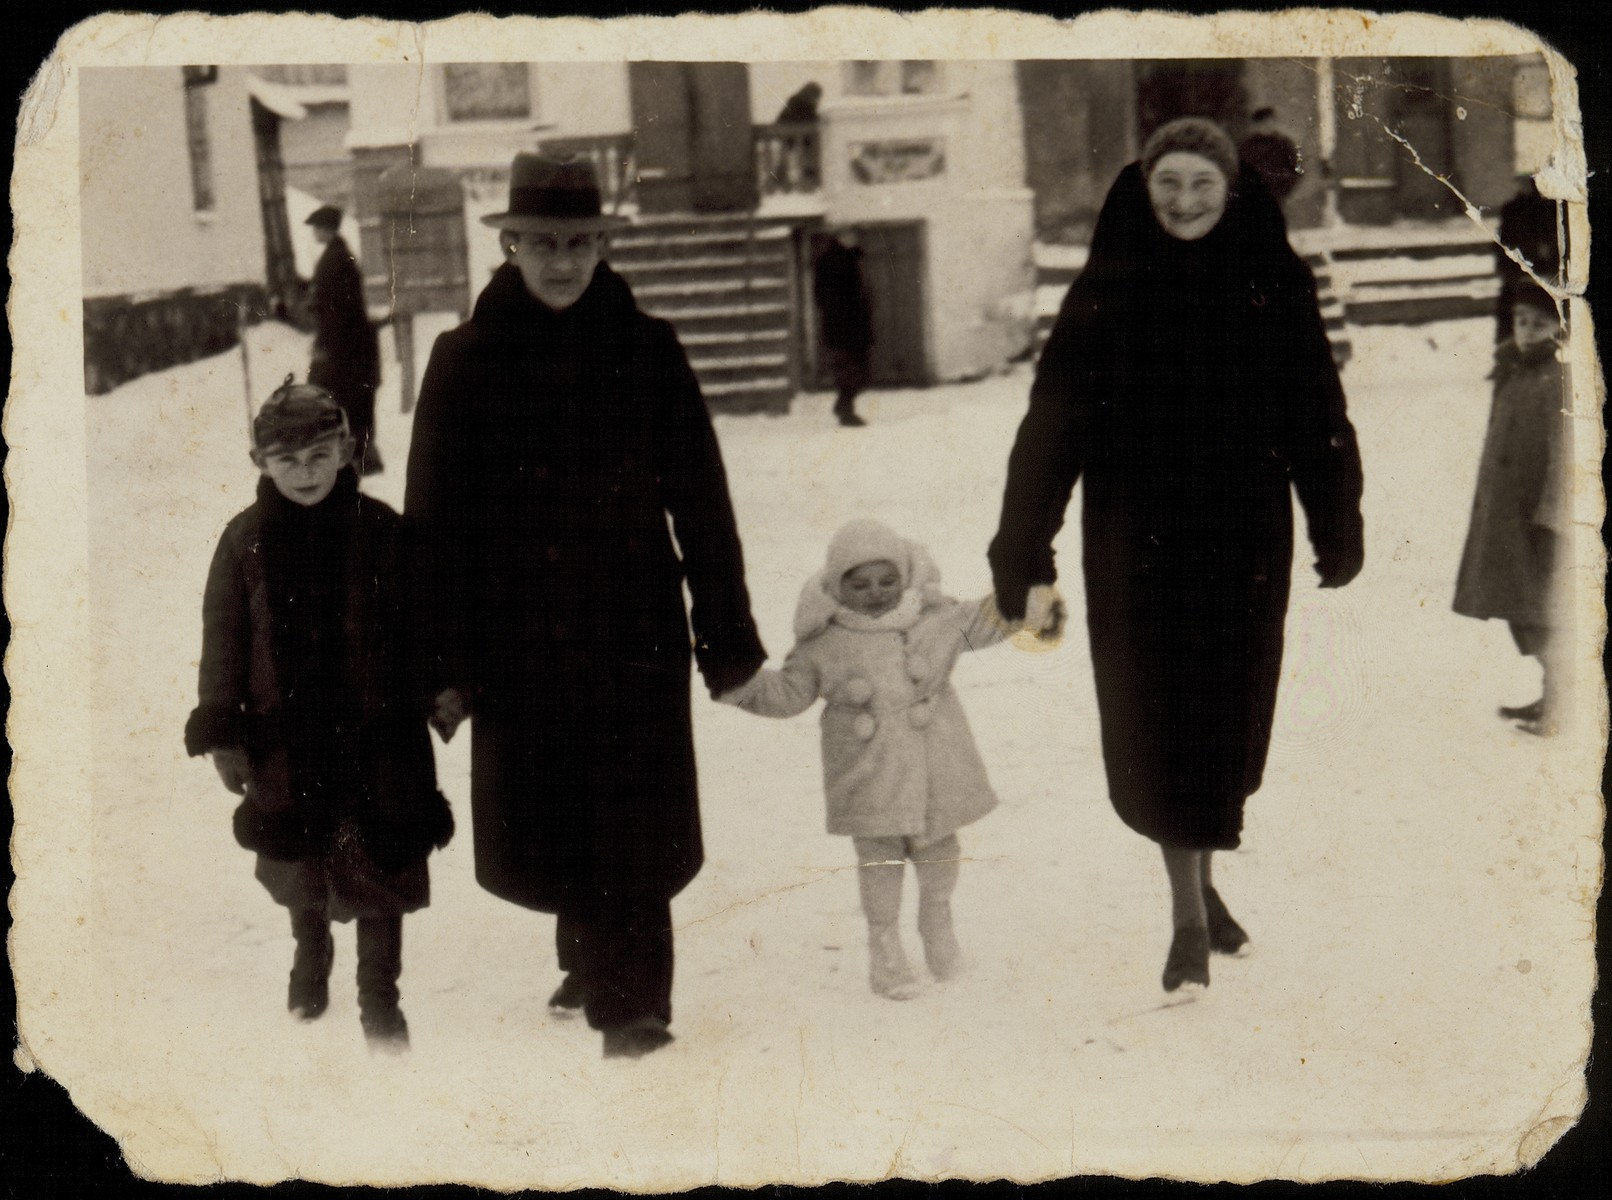 The Sonenson family walks along a snow-covered street in Eisiskes.  Pictured are Moshe and Zipporah Sonenson with their children, Yitzhak and Yaffa.